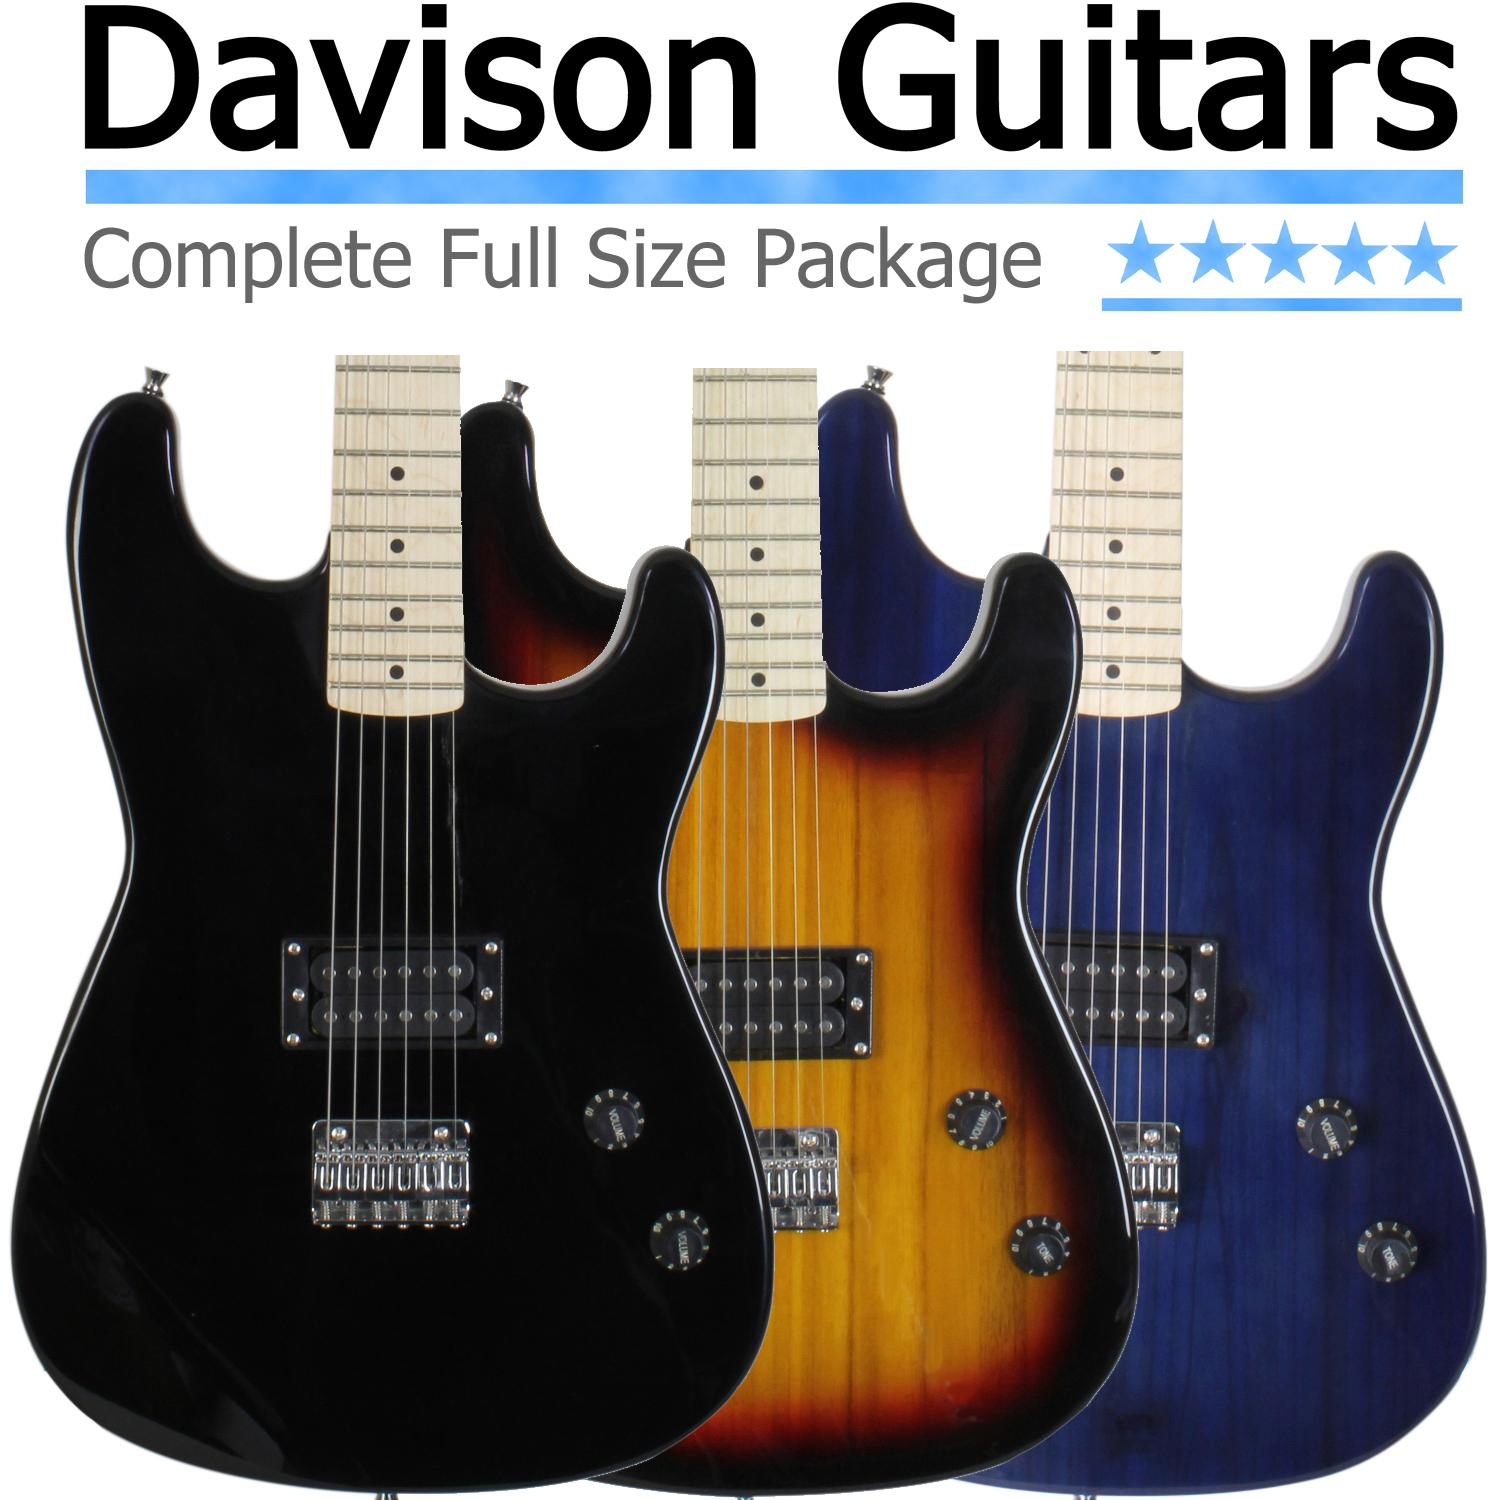 davison guitars gtr23lh bk left pkg left handed beginner electric guitar package with amp case. Black Bedroom Furniture Sets. Home Design Ideas